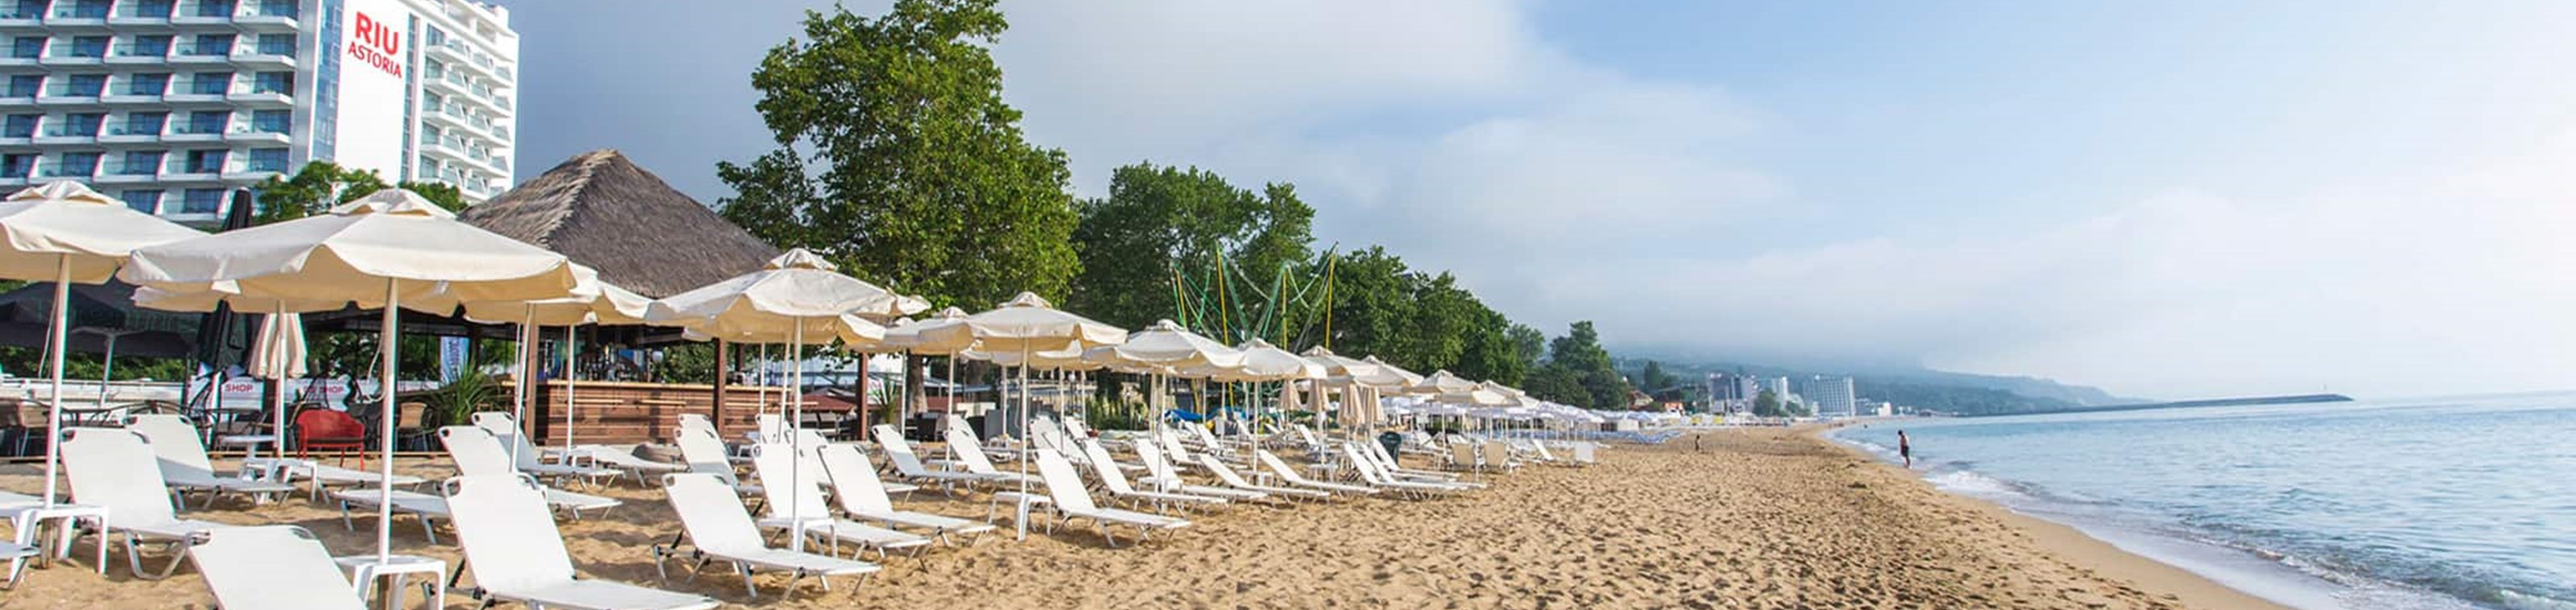 RIU Astoria in Bulgarije